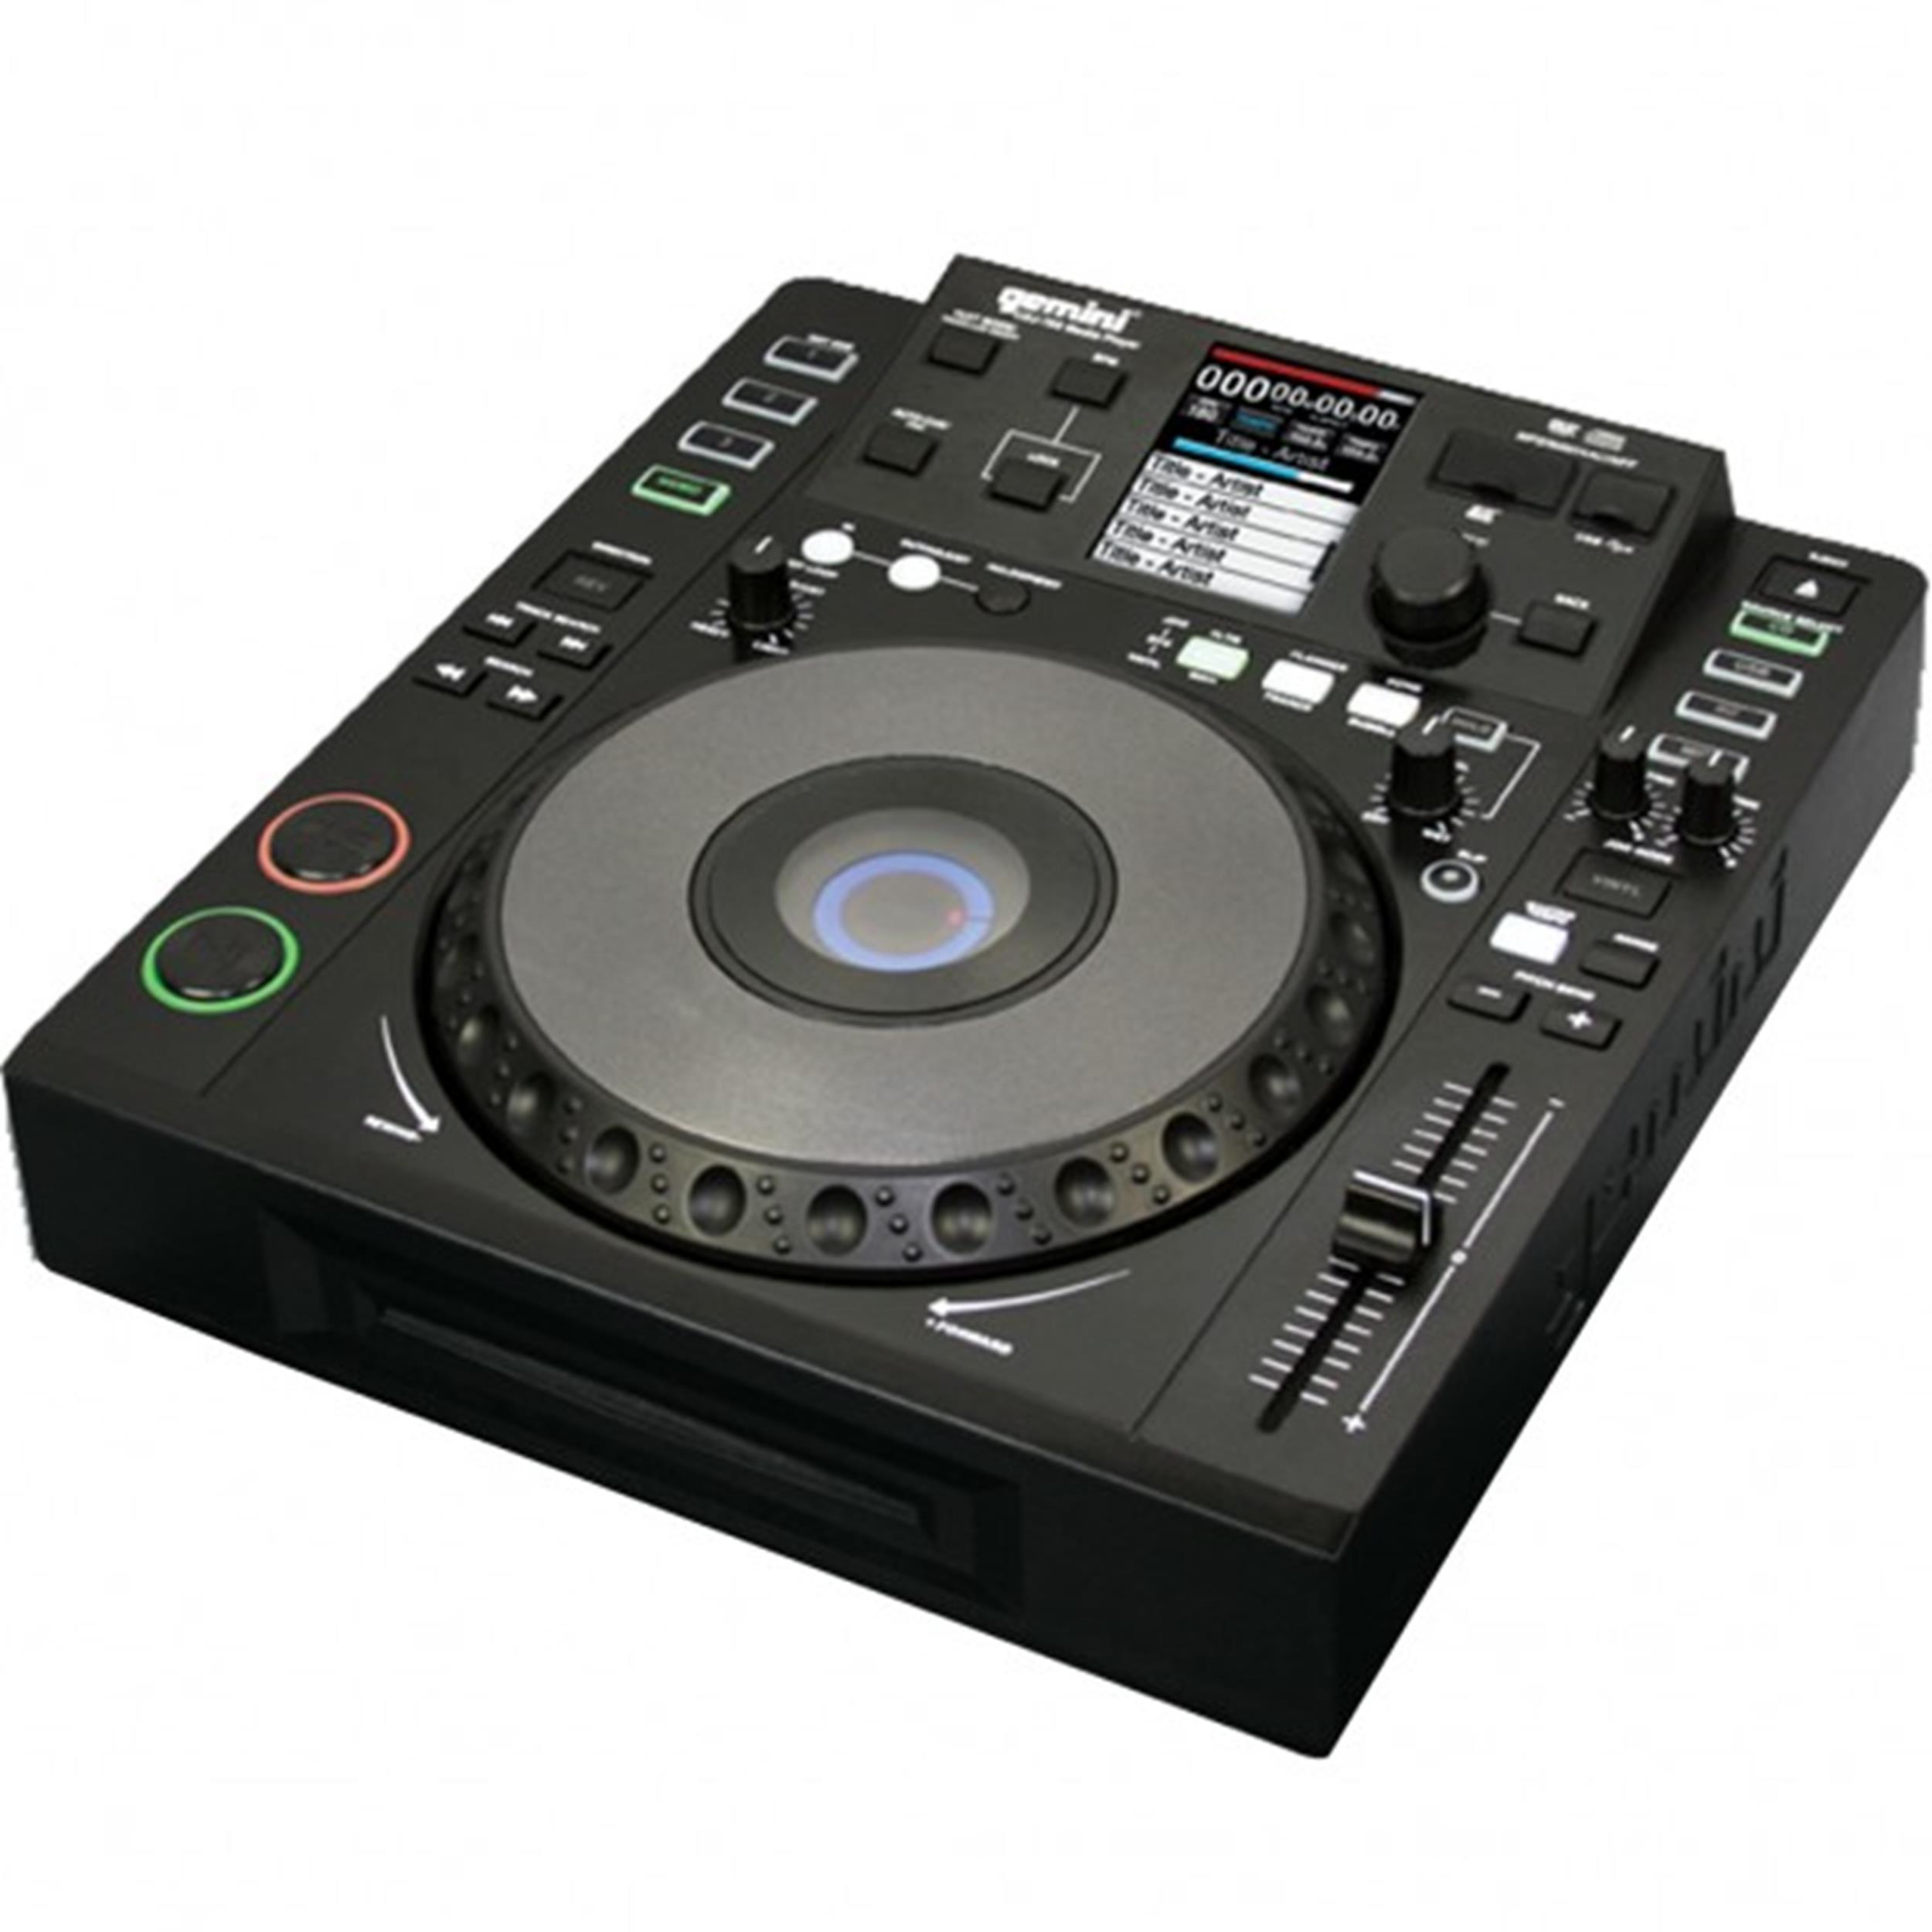 GEMINI CDJ 700 CD PLAYER COPPIA